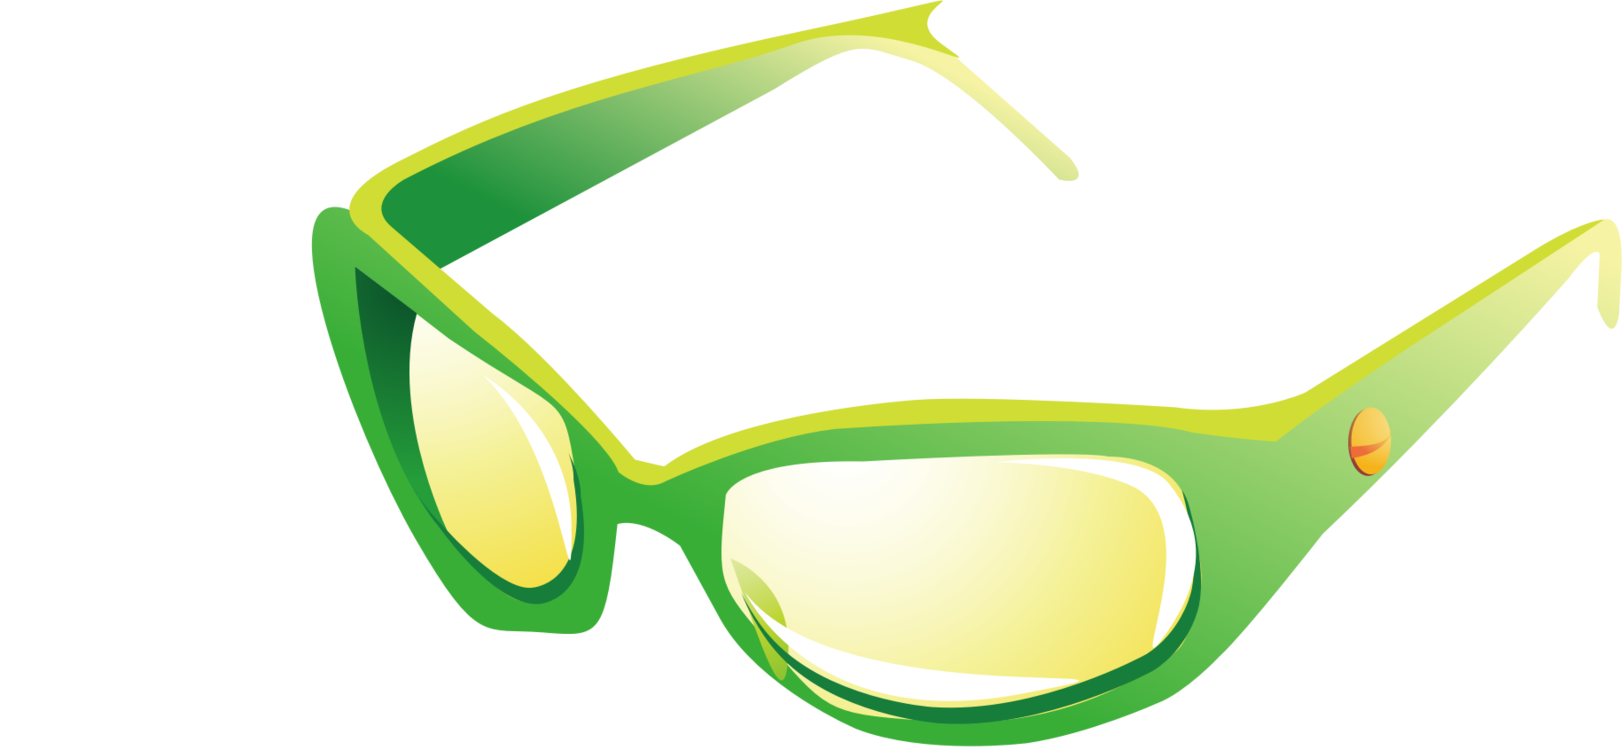 Sunglasses,Vision Care,Brand